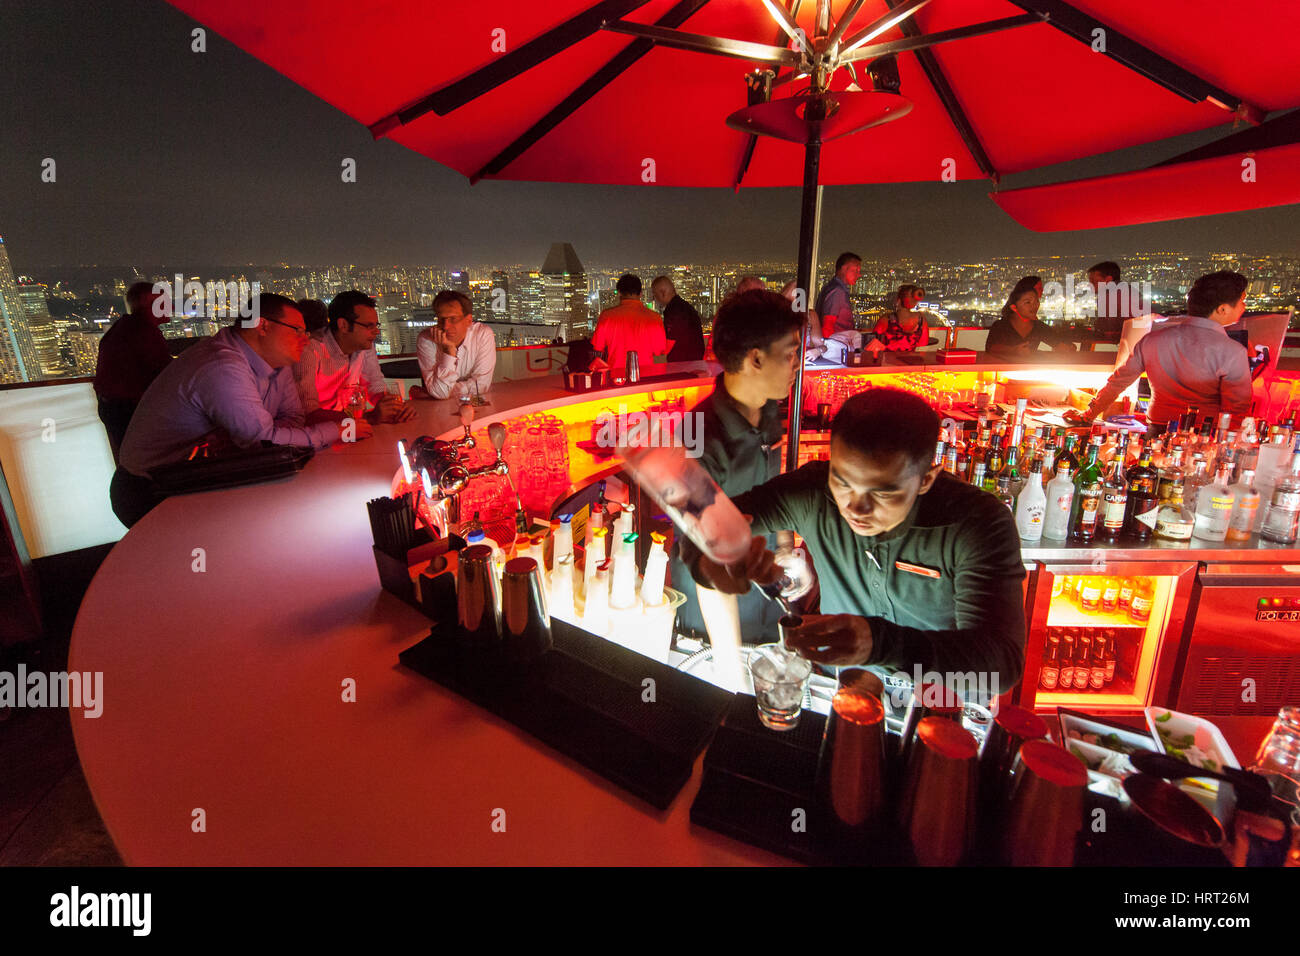 Roof top bar, CÉ LA VI SkyBar, bar, bartender, red sunshades, on the Marina Bay Sands, Singapore, Asia, Singapore - Stock Image